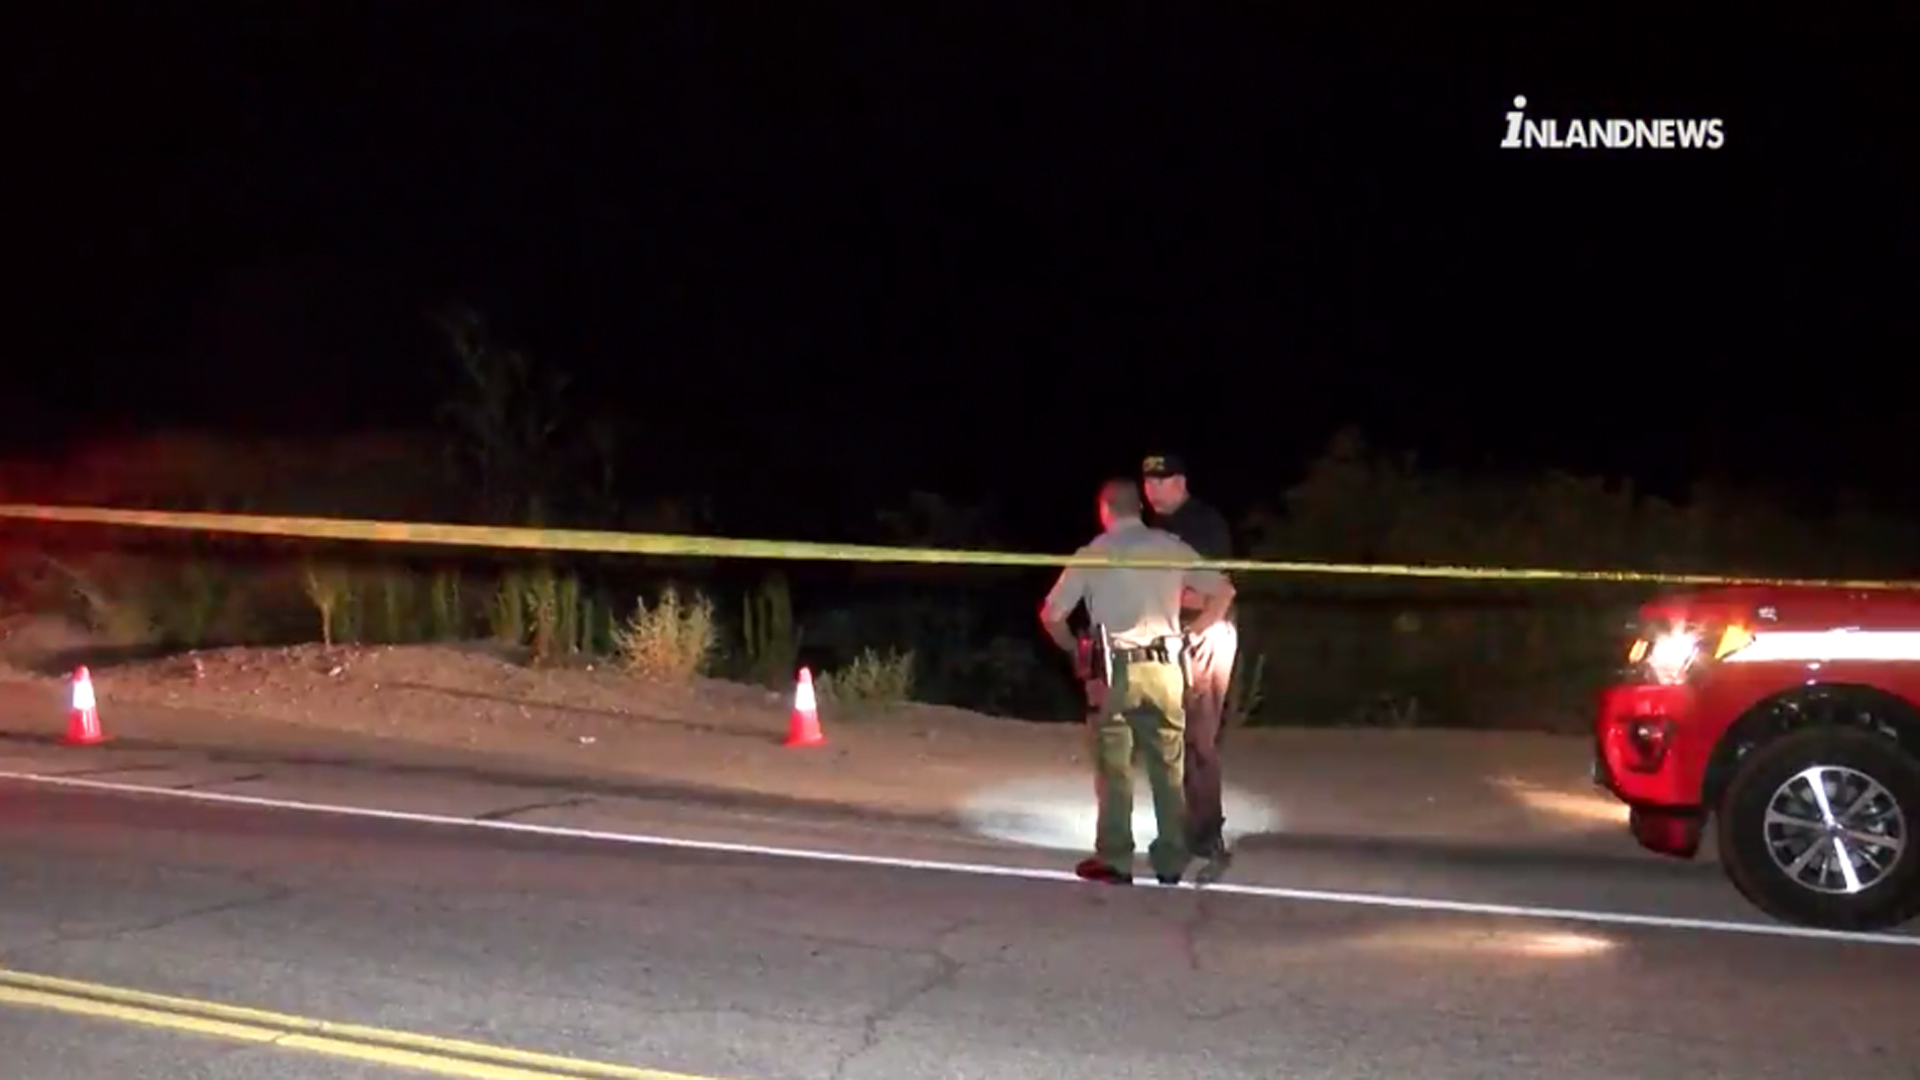 Officials investigate the discovery of a body in the Upland area on Aug. 23, 2019. (Credit: Inland News)